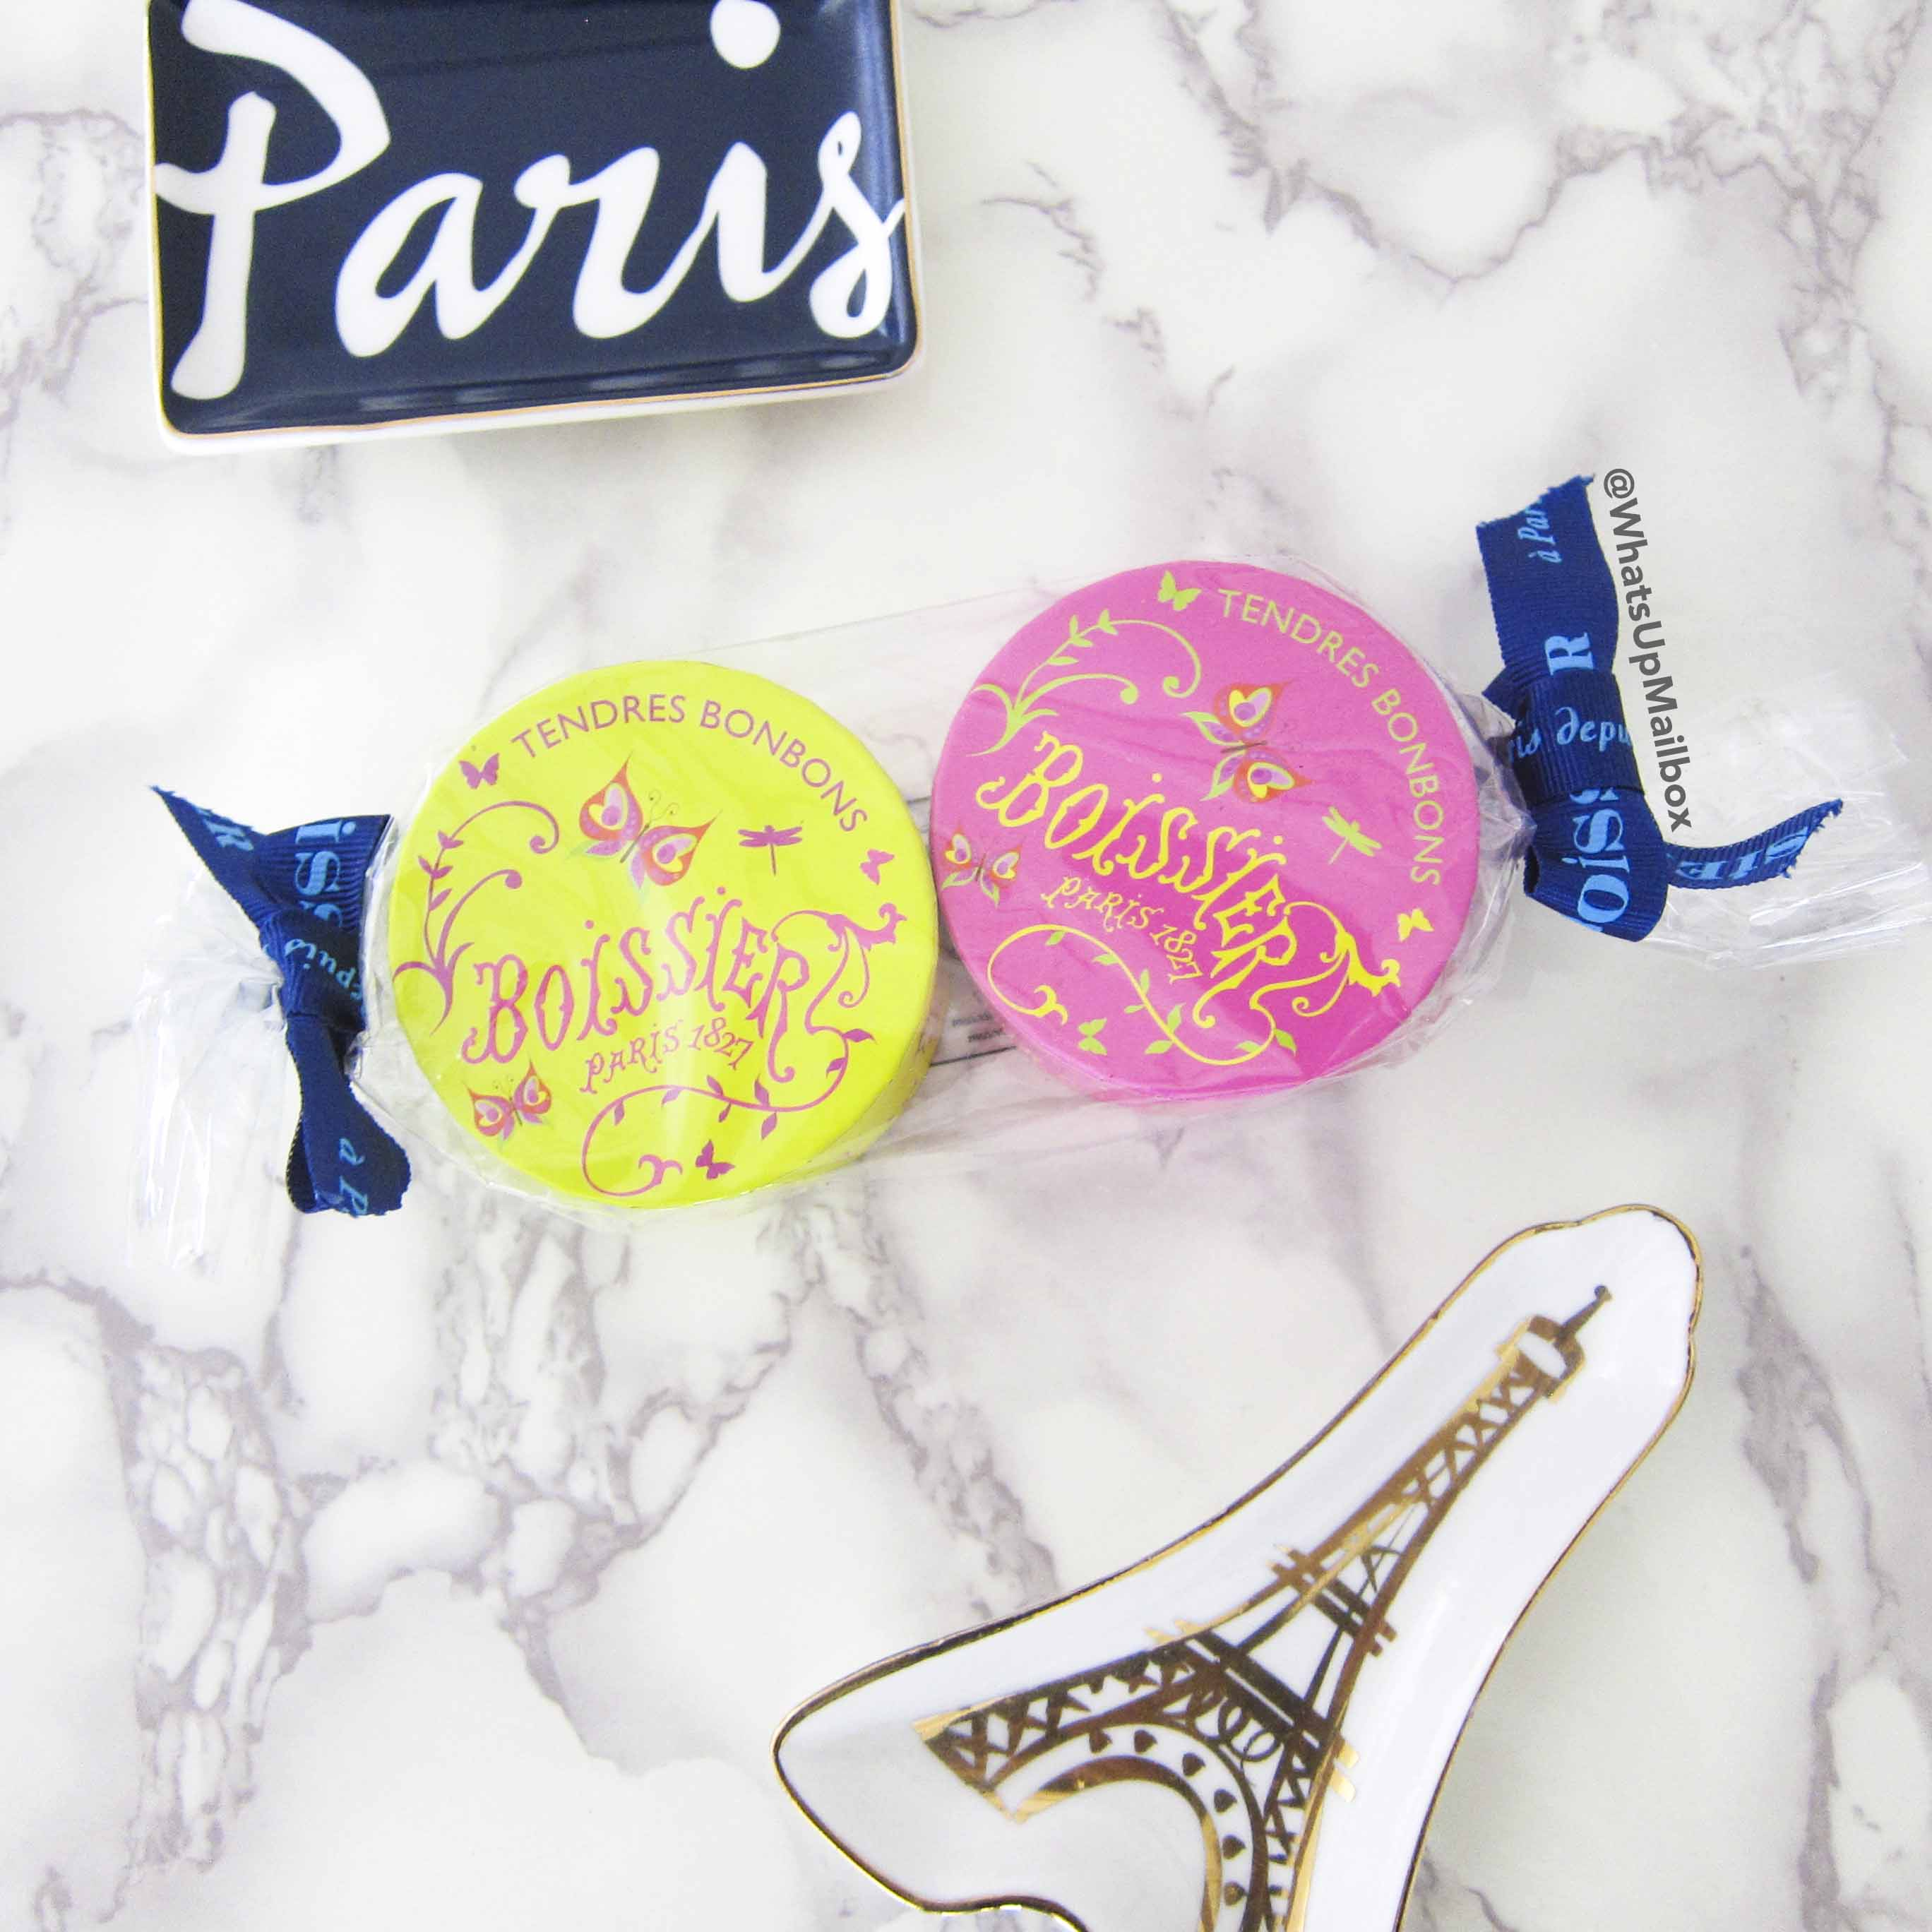 Oui Please Vol. 2.3 - Boissier Paris Strawberry Lemon Bon Bons